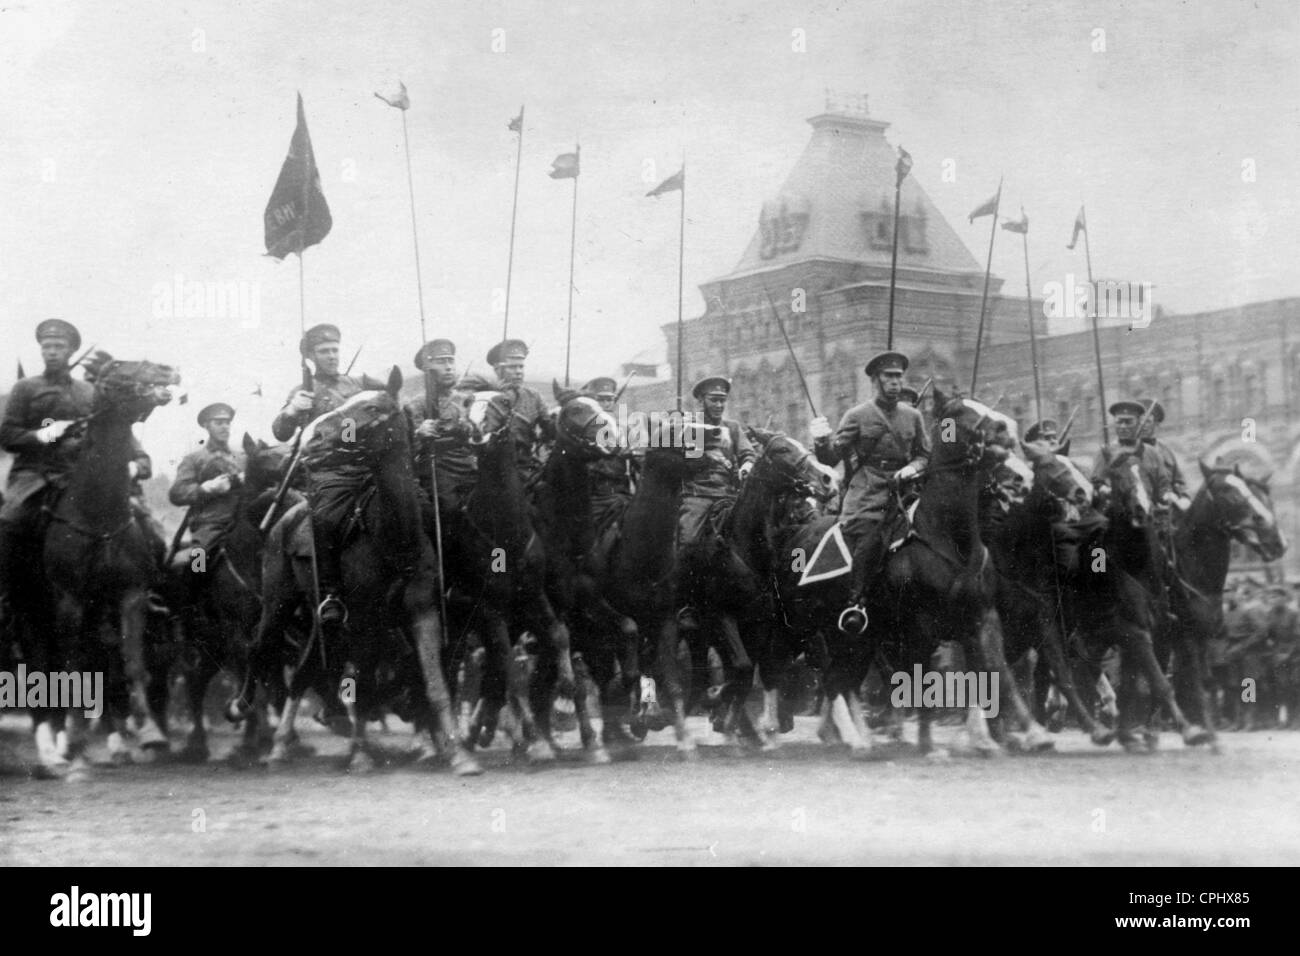 The cavalry on parade - Stock Image